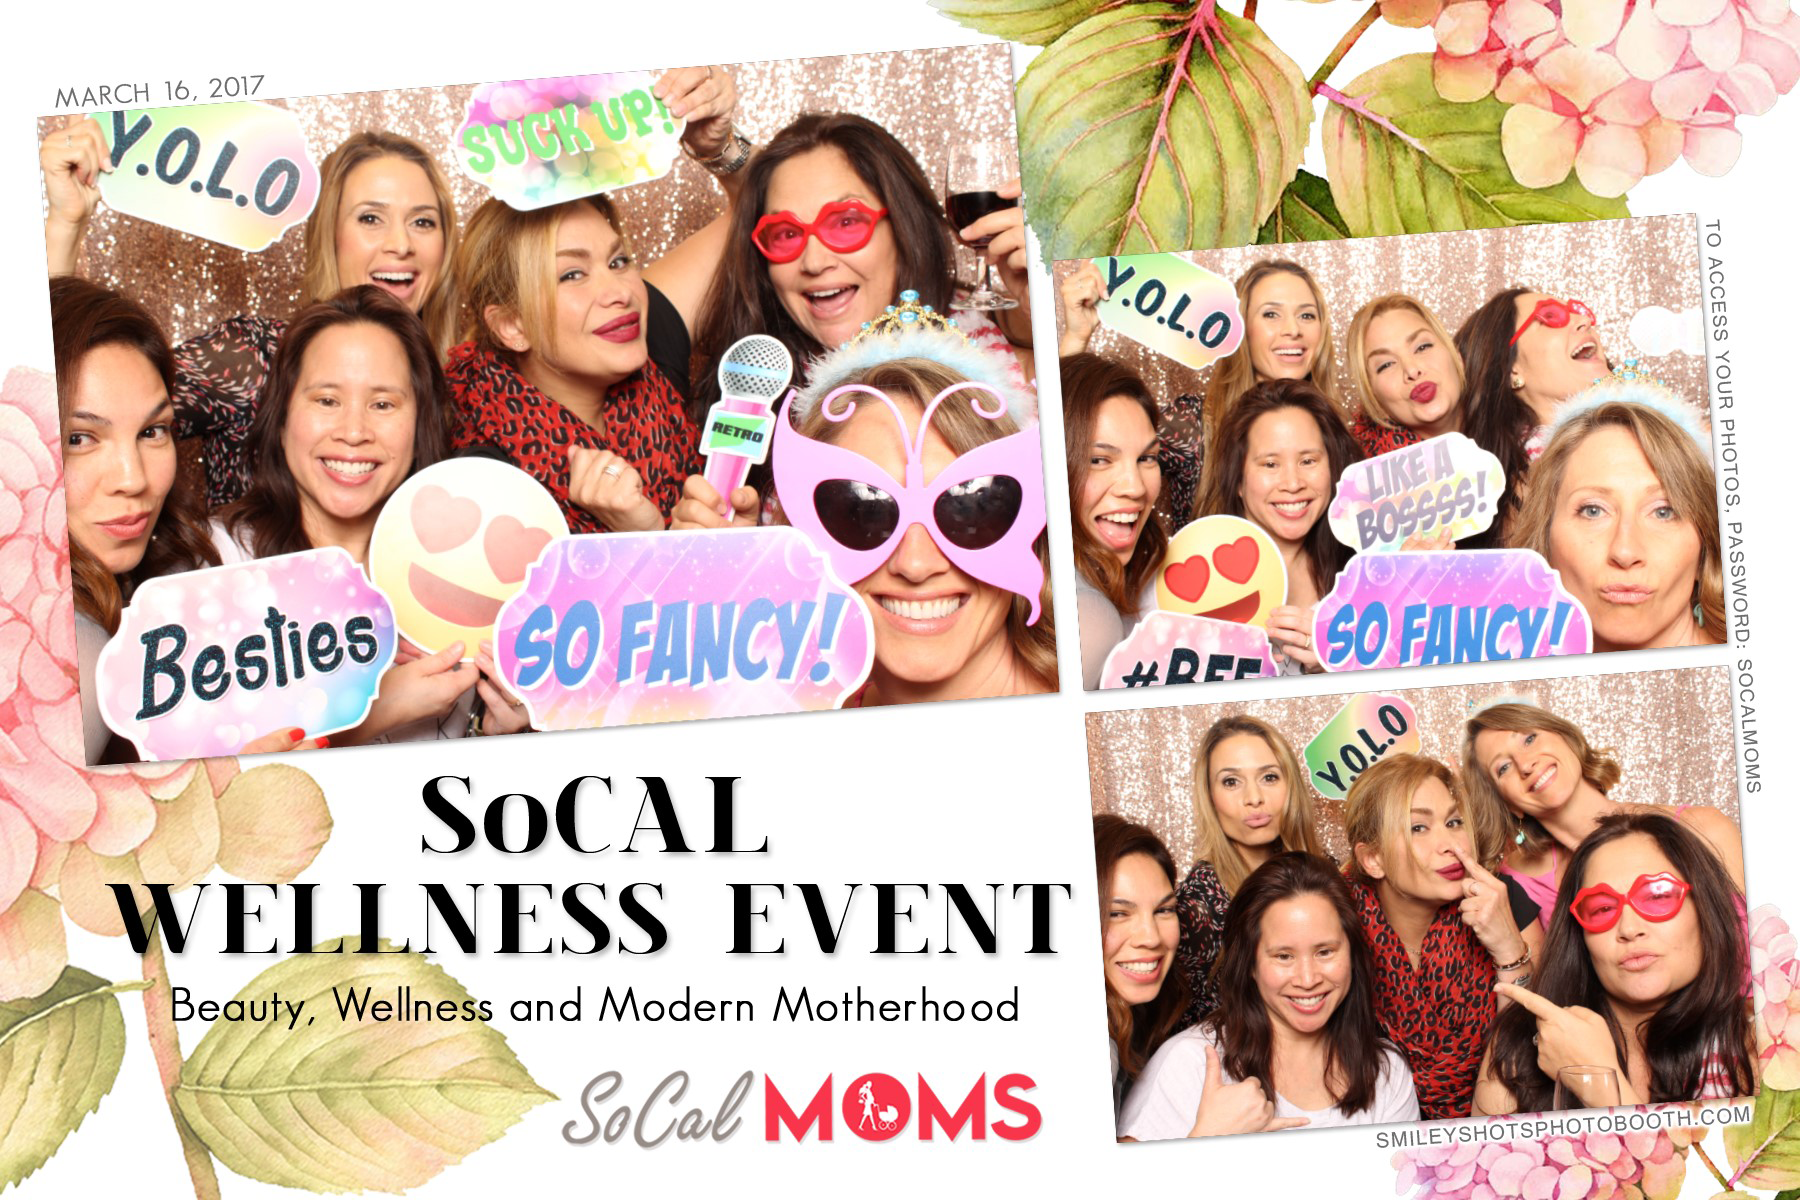 Socal Wellness Event Socal Moms Smiley Shots Photo Booth Photobooth (21).png